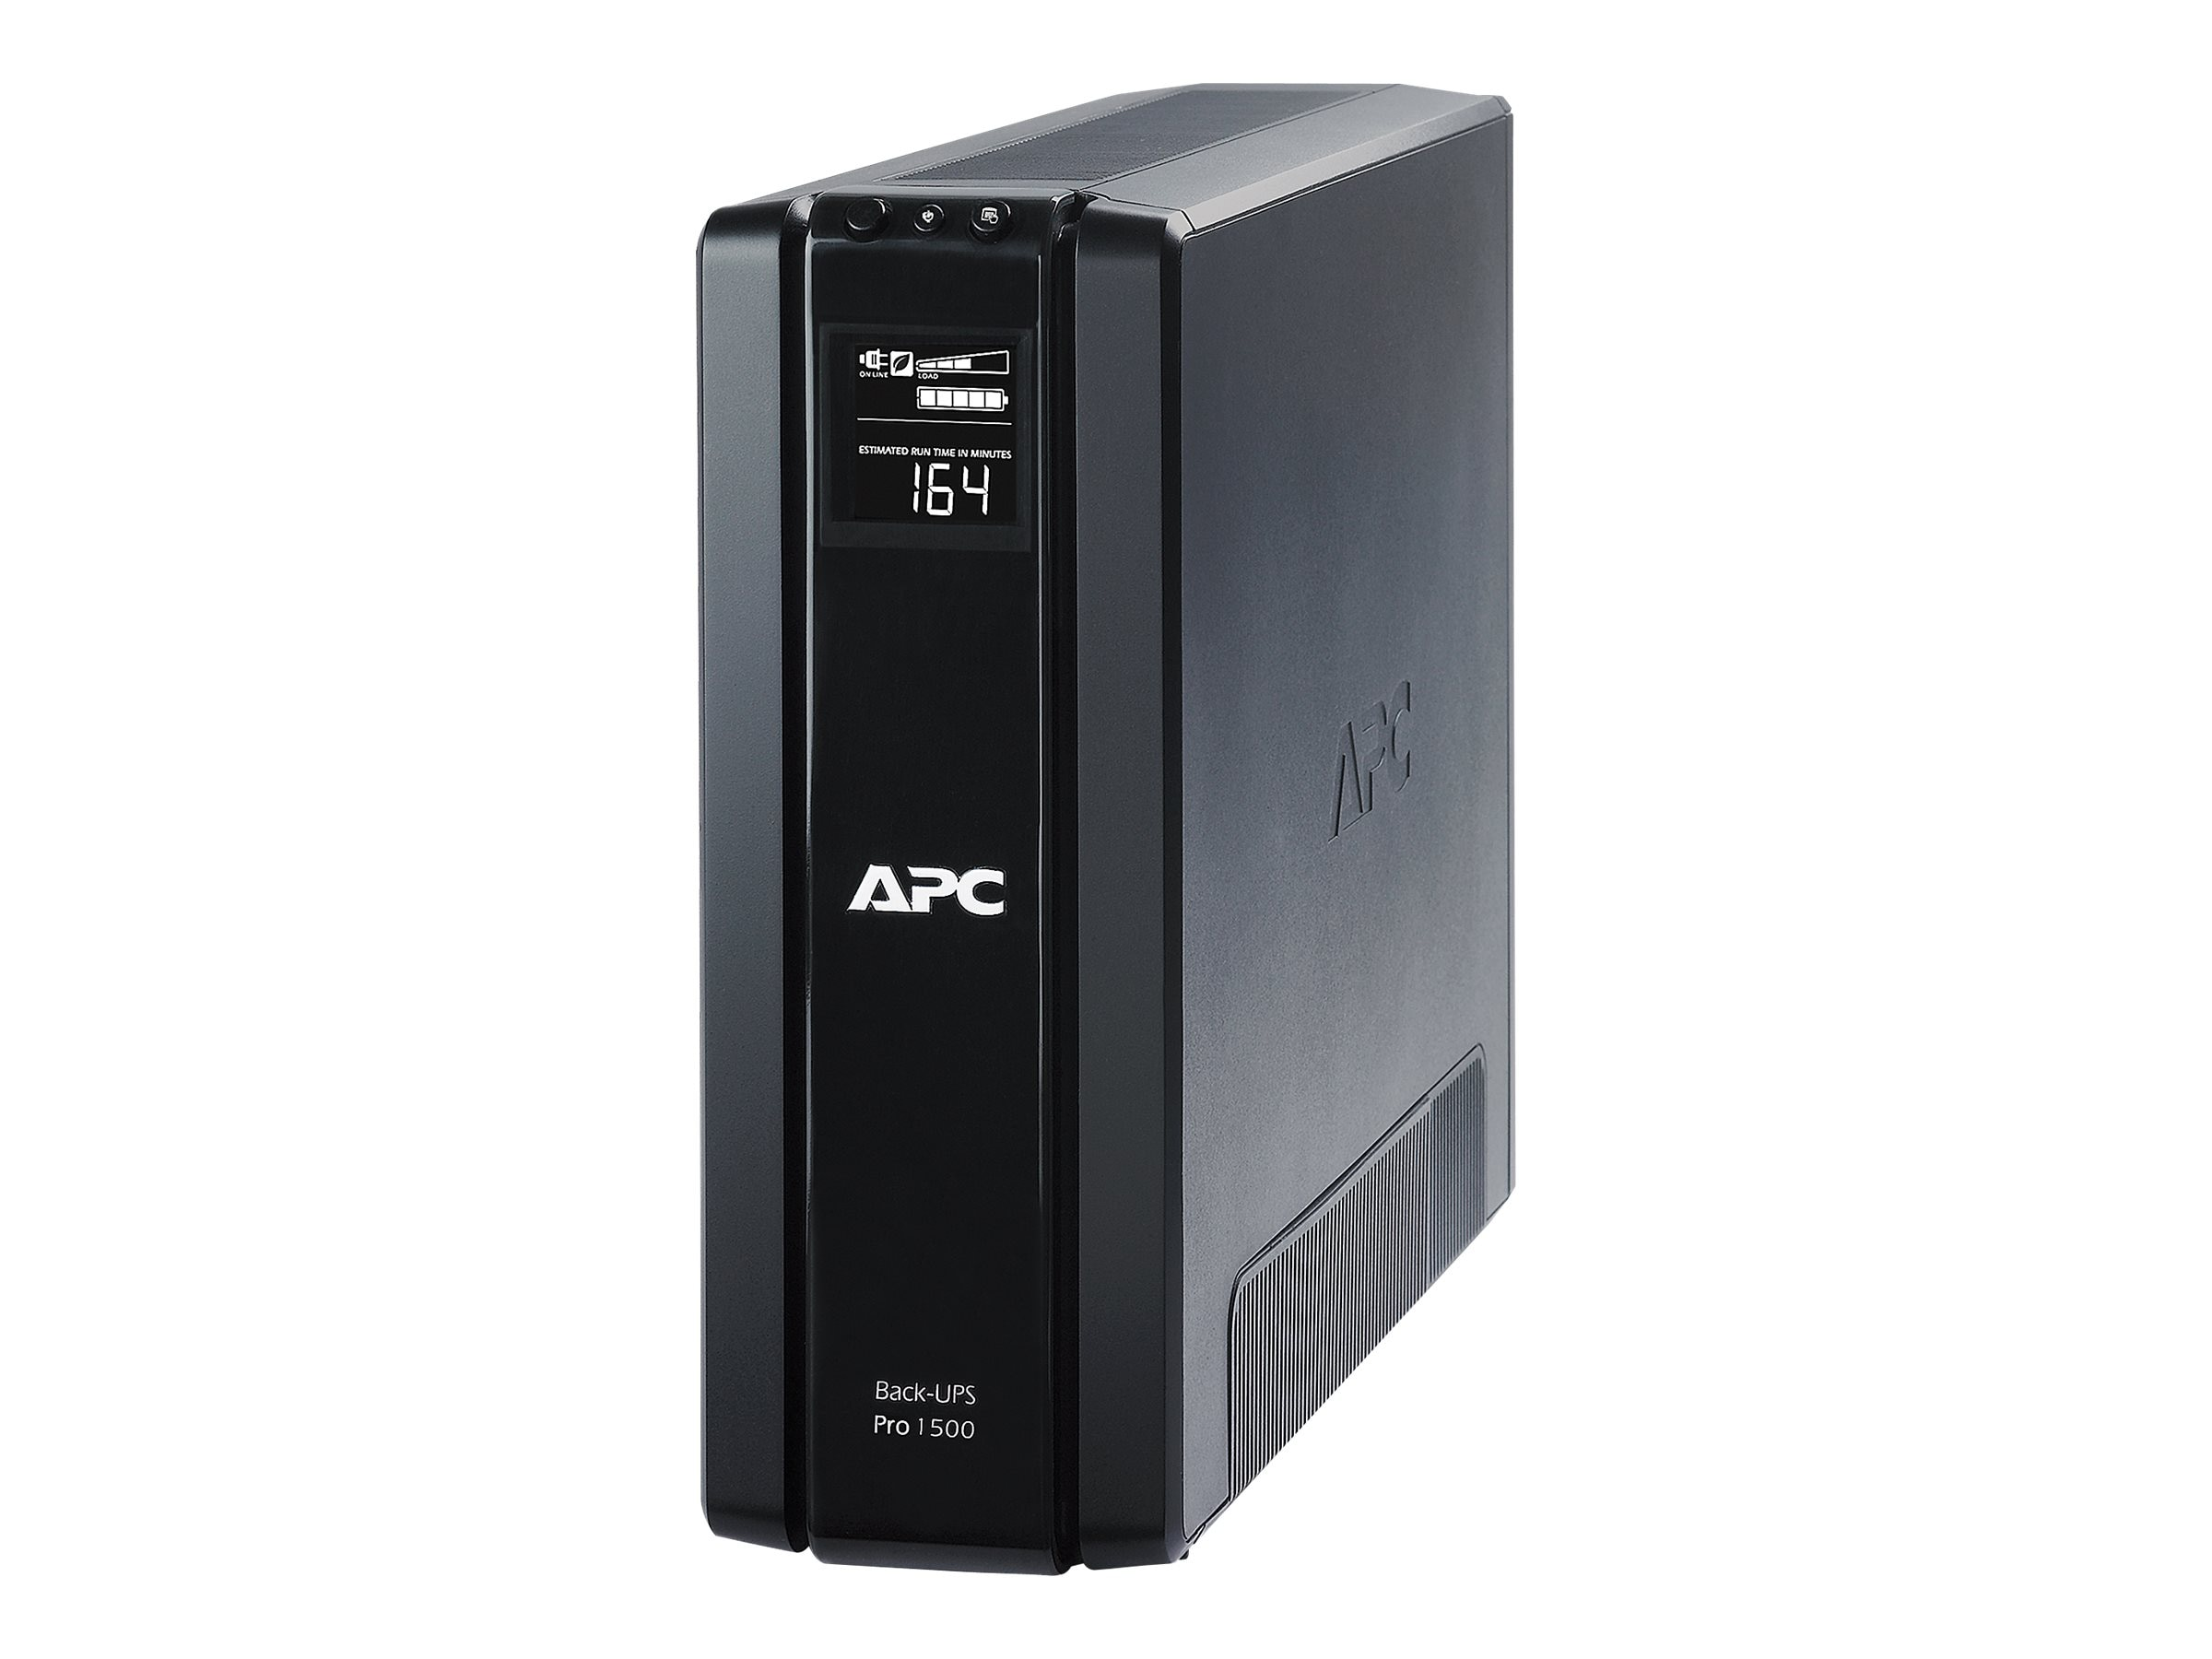 APC Power-Saving Back-UPS Pro 1500VA 865W 5-15P Input, Instant Rebate - Save $8, BR1500G, 11682182, Battery Backup/UPS